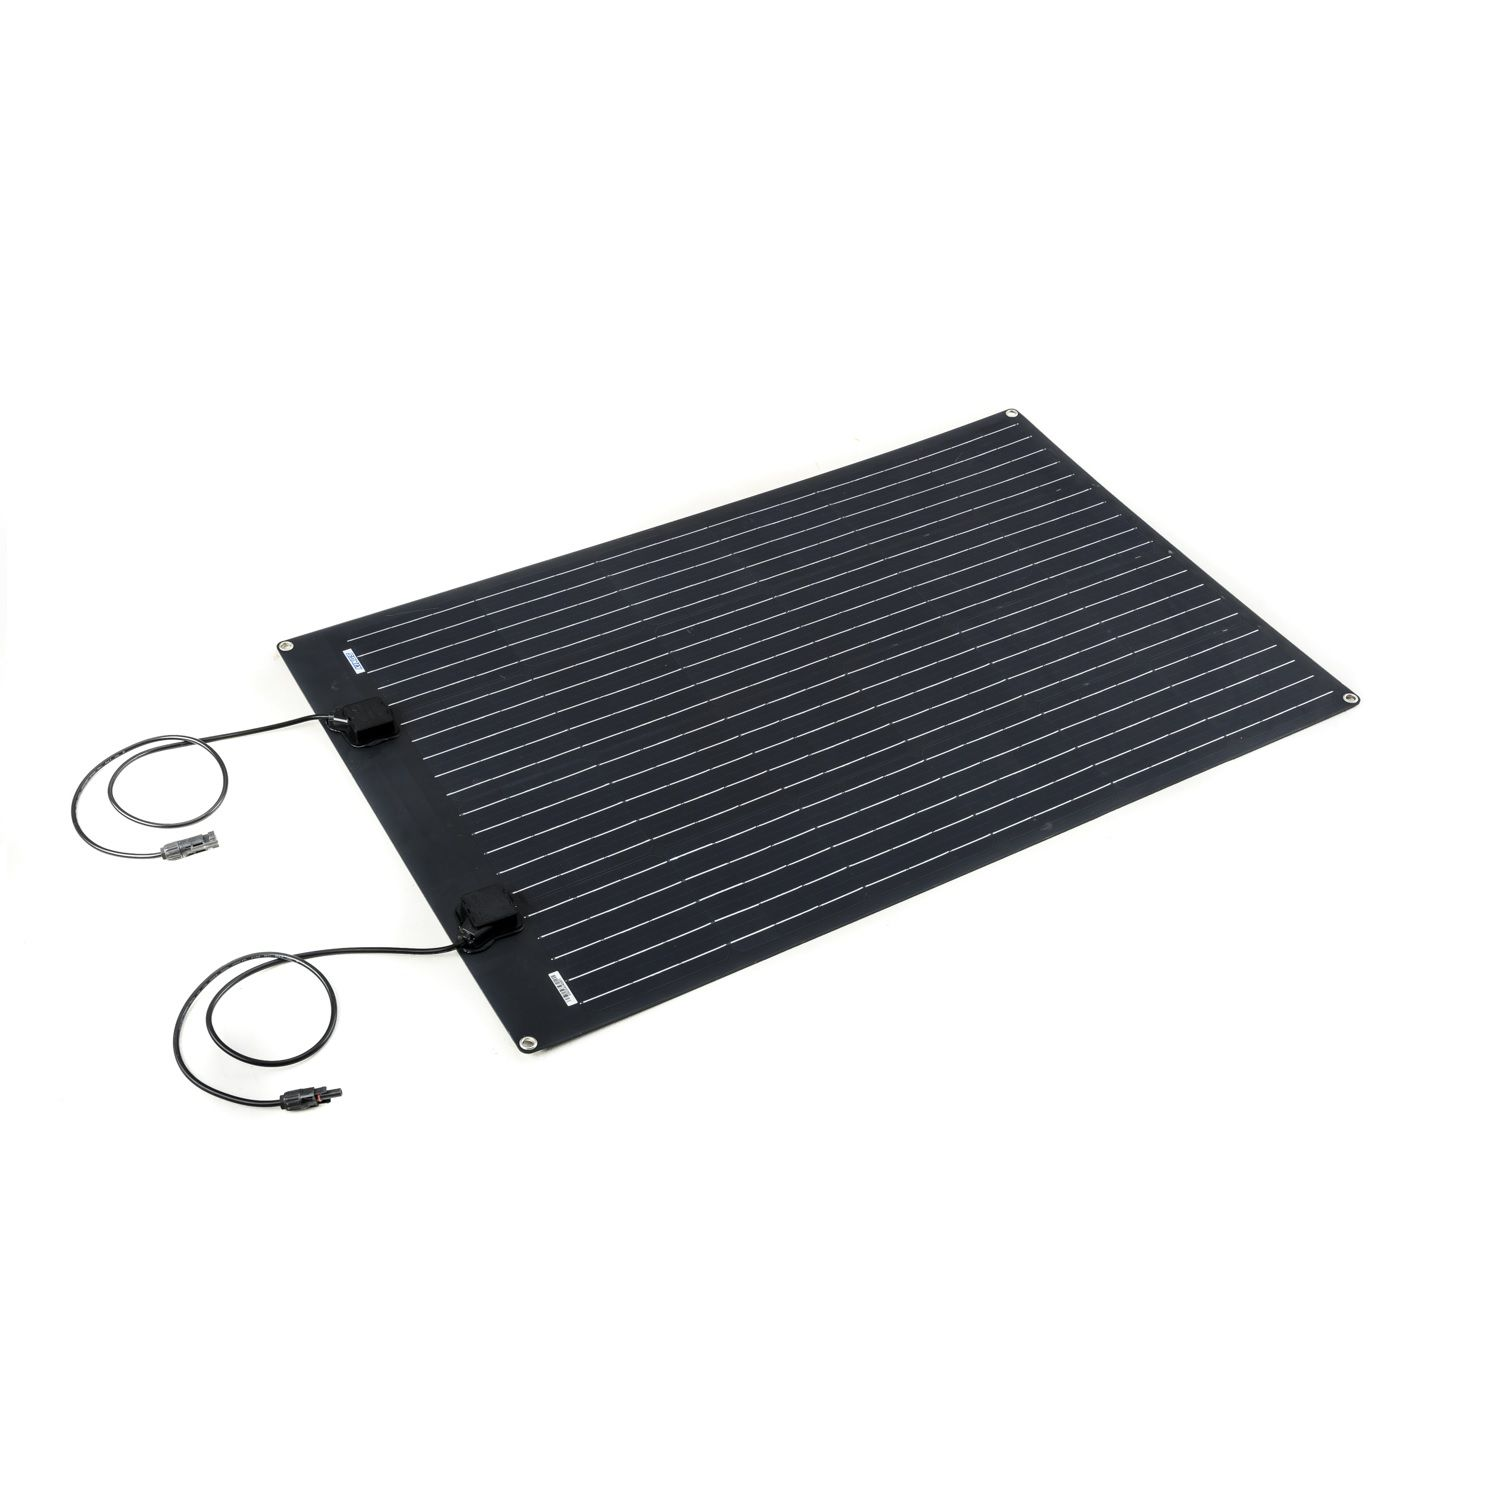 Kings 110W Semi-Flexible Solar Panel | PET construction | Monocrystalline Cells | IP67 Rated